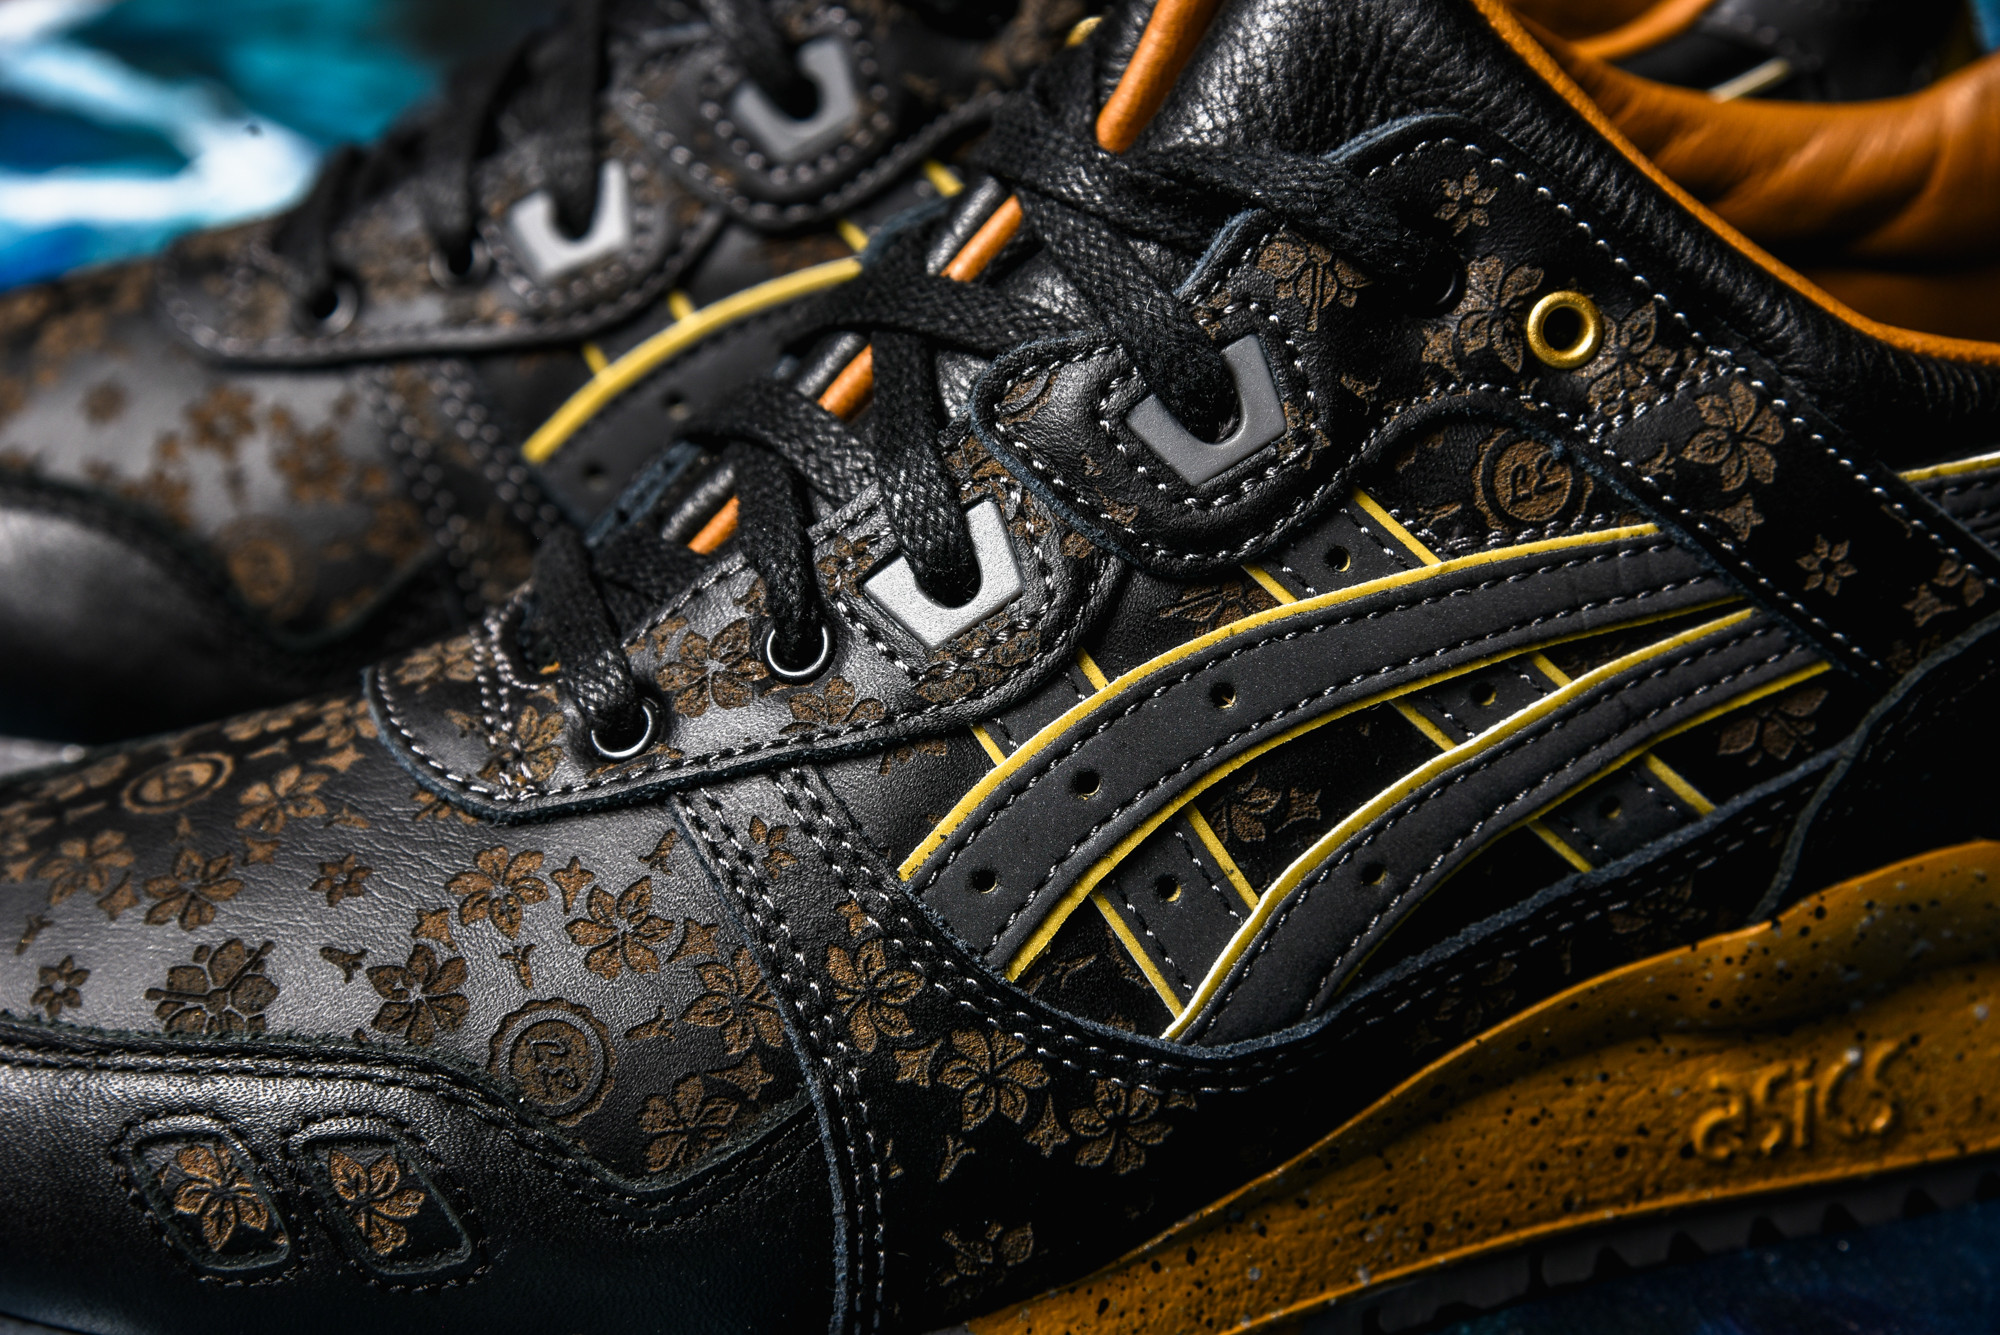 outlet store bcee1 1ae5e ASICS x The Limited Edt Gel-Lyte III Vanda Kuro 2 - WearTesters